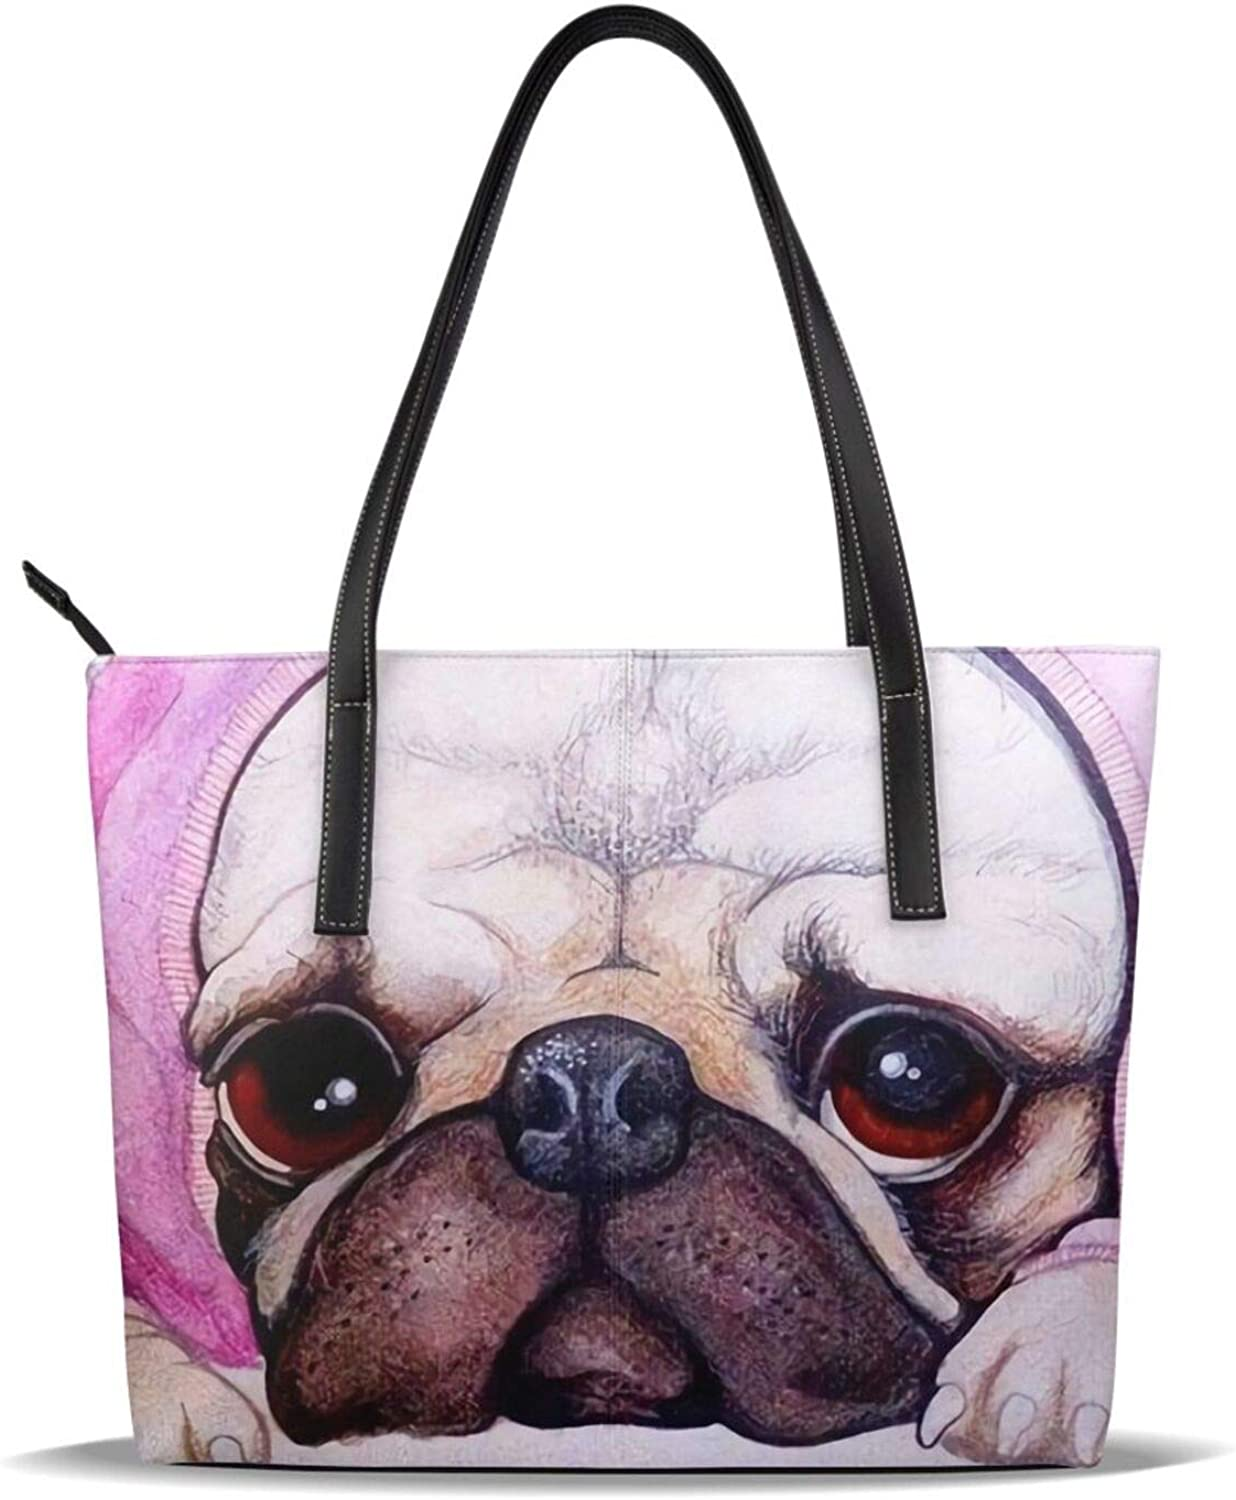 Cute Pug With Outlet ☆ Free Shipping A Hammer On Its Head Pu Ranking TOP3 Printed Pattern Leather Ca